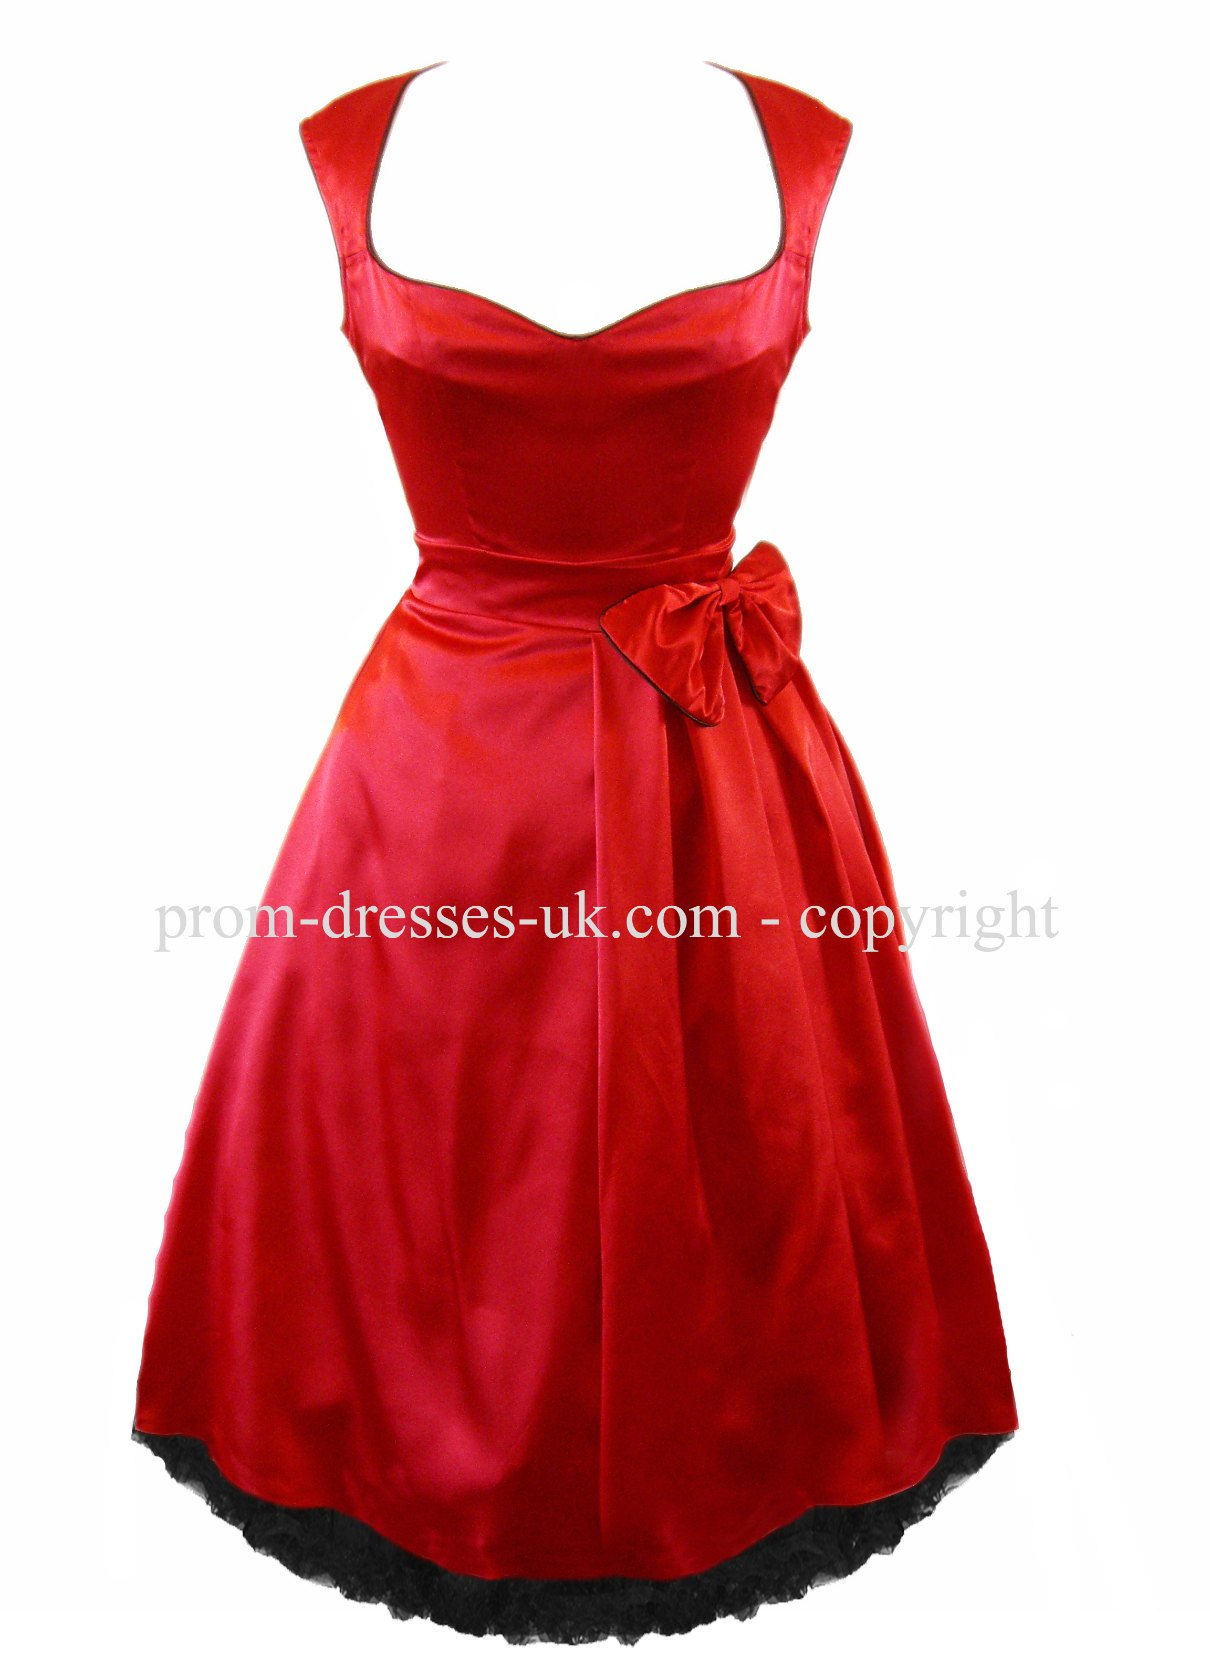 Enlarge Red Satin Bow Dress